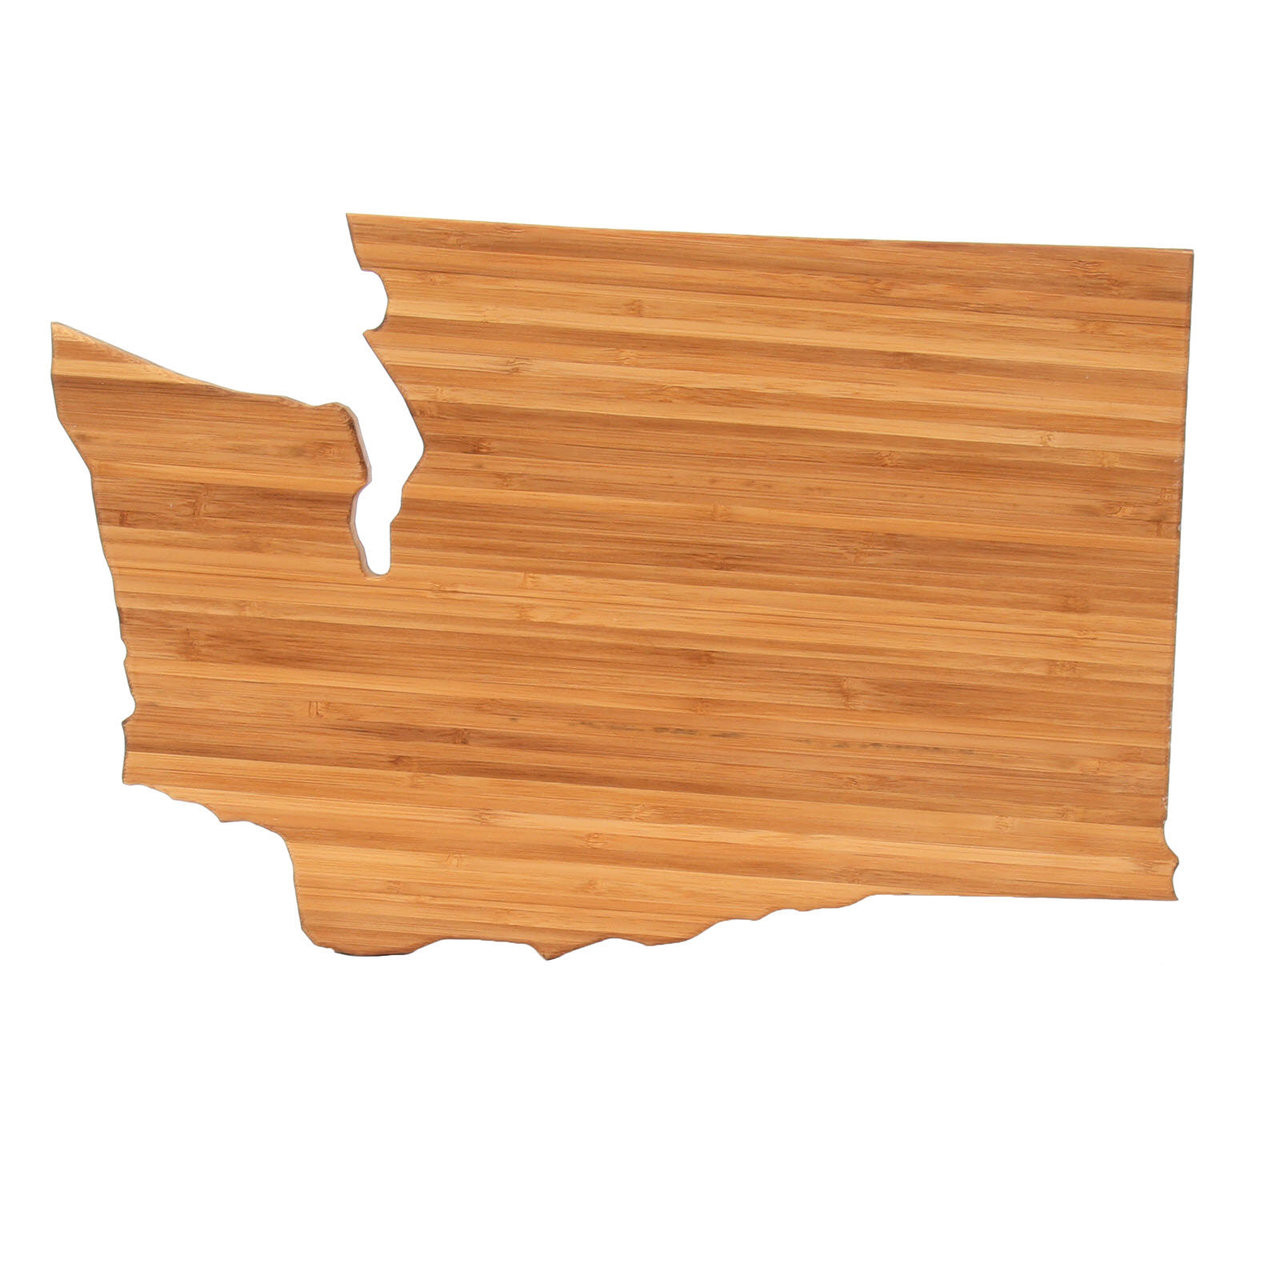 4 Cutting Boards Holder